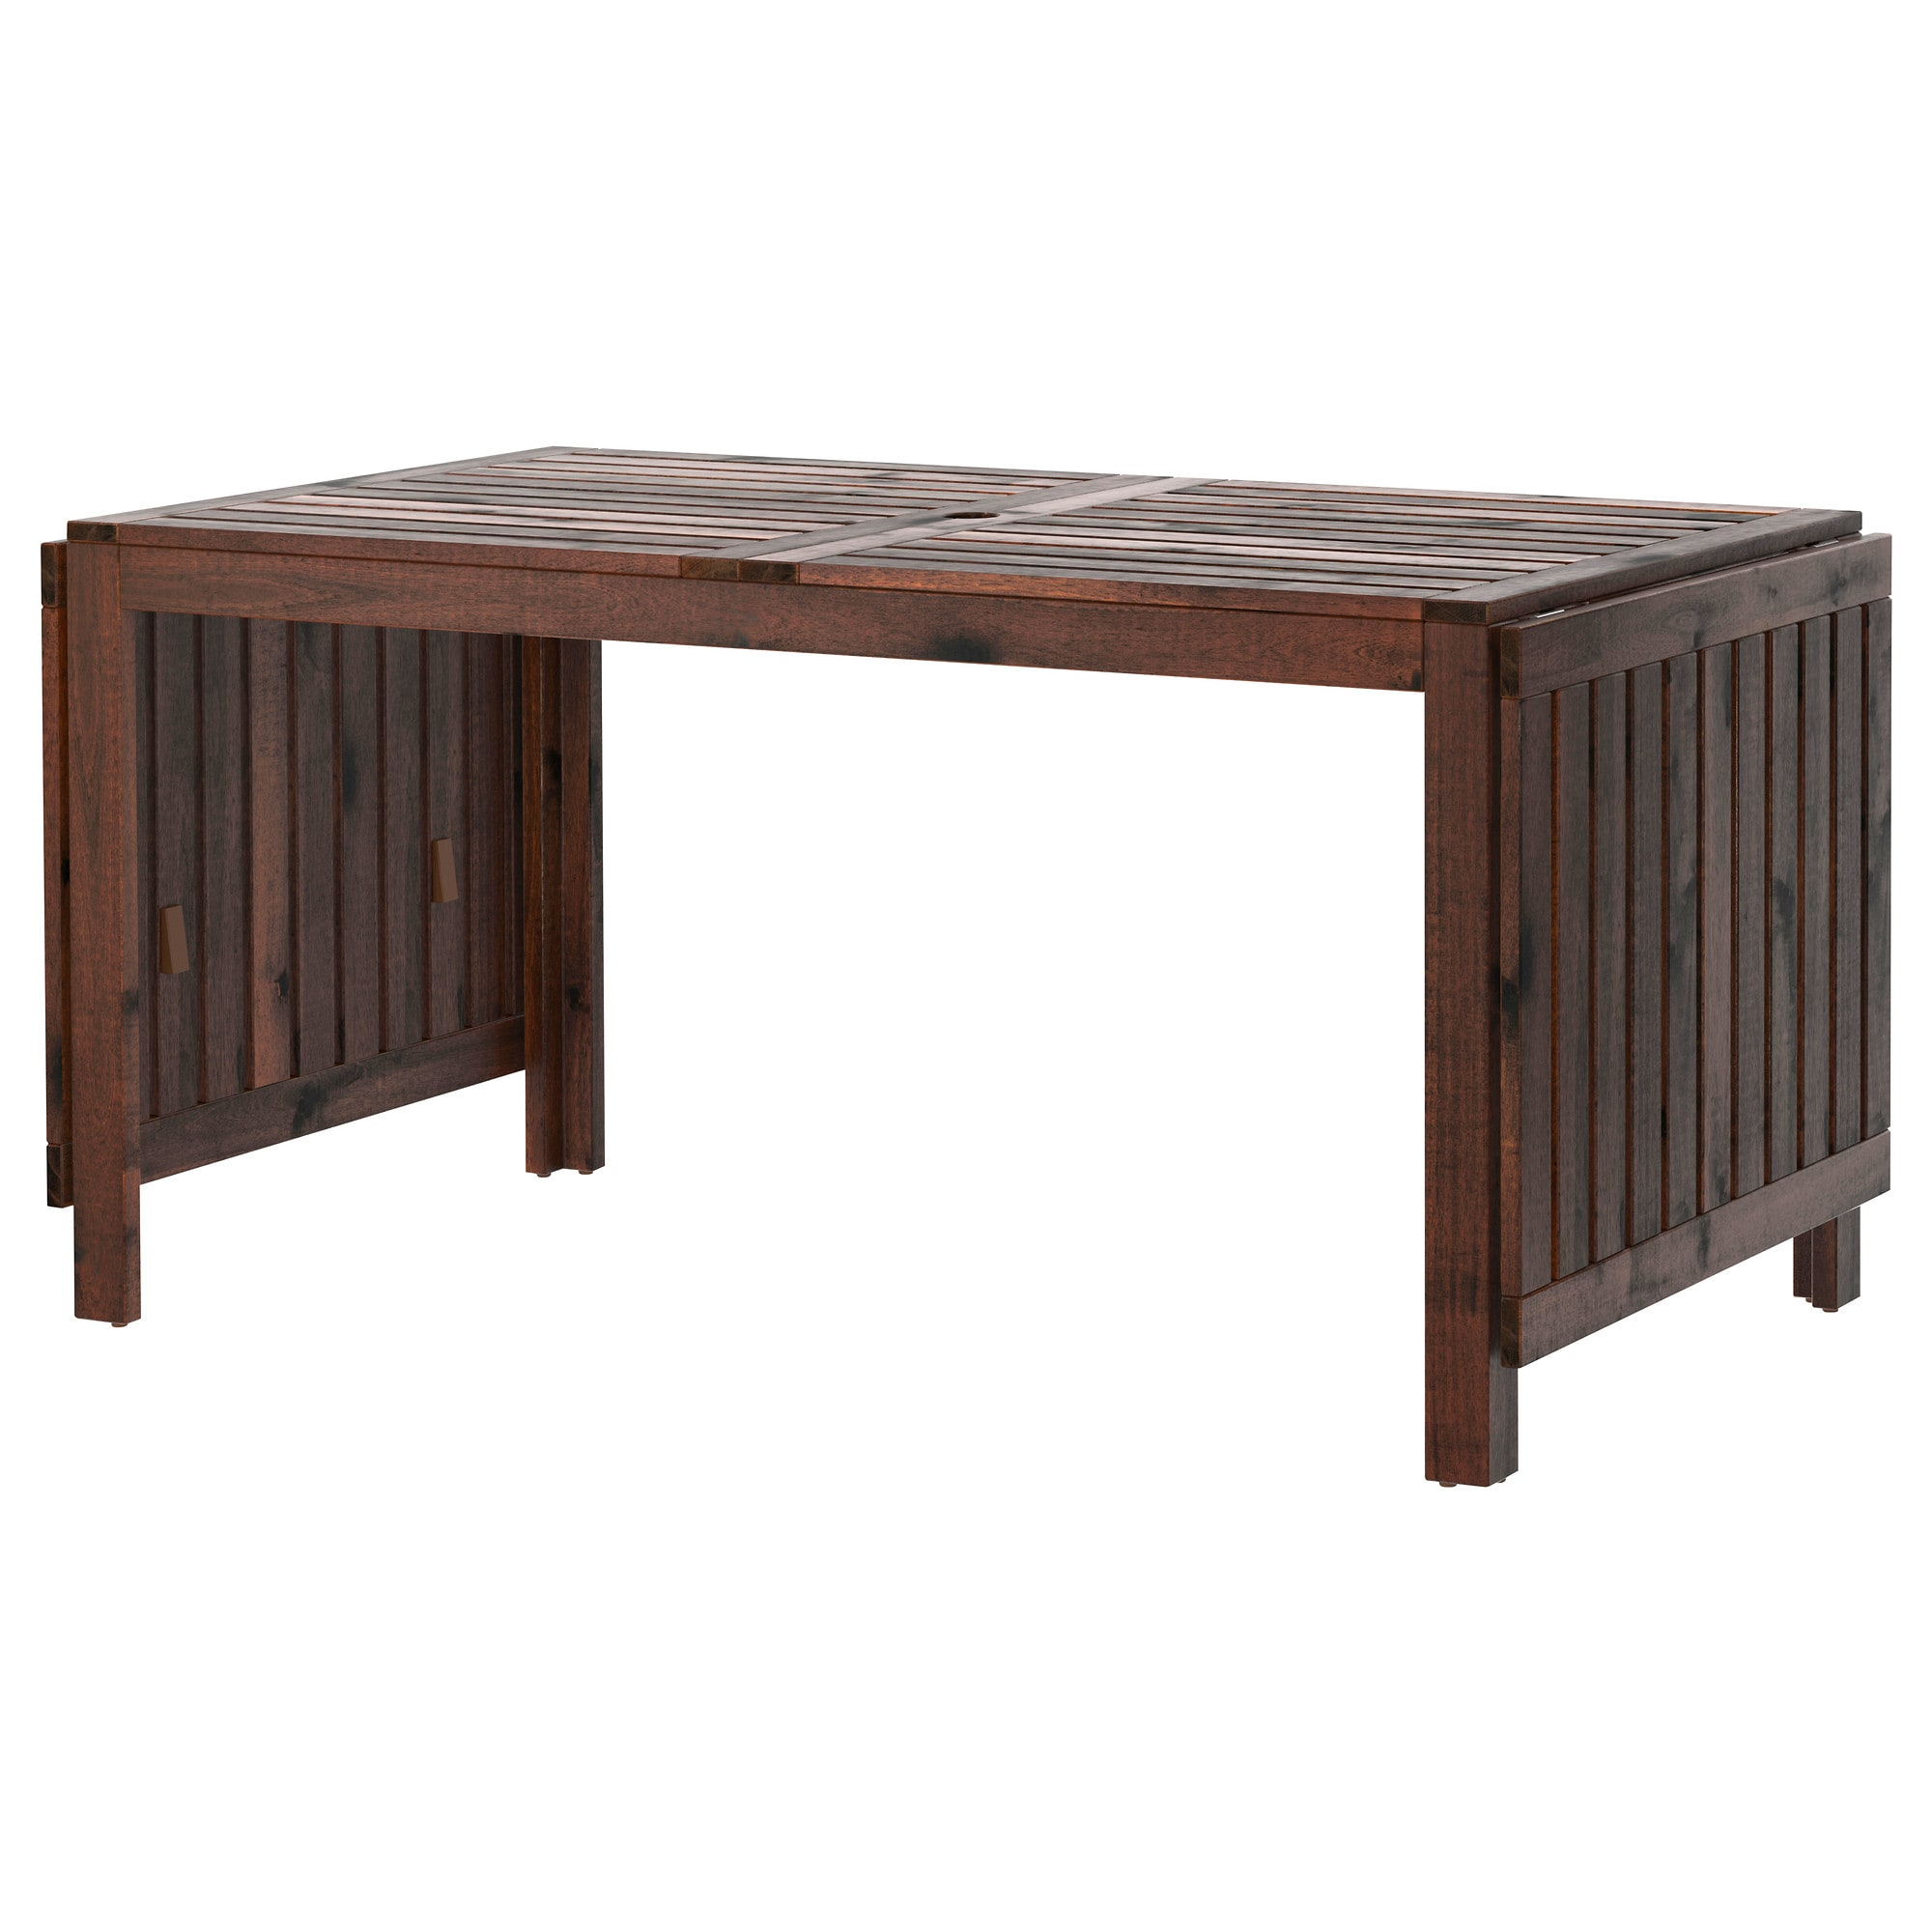 applaro drop leaf table outdoor ikea side for bbq feedback west elm mid century dresser legs tables narrow end with drawer barn door kitchen cabinets iron glass tops clear acrylic